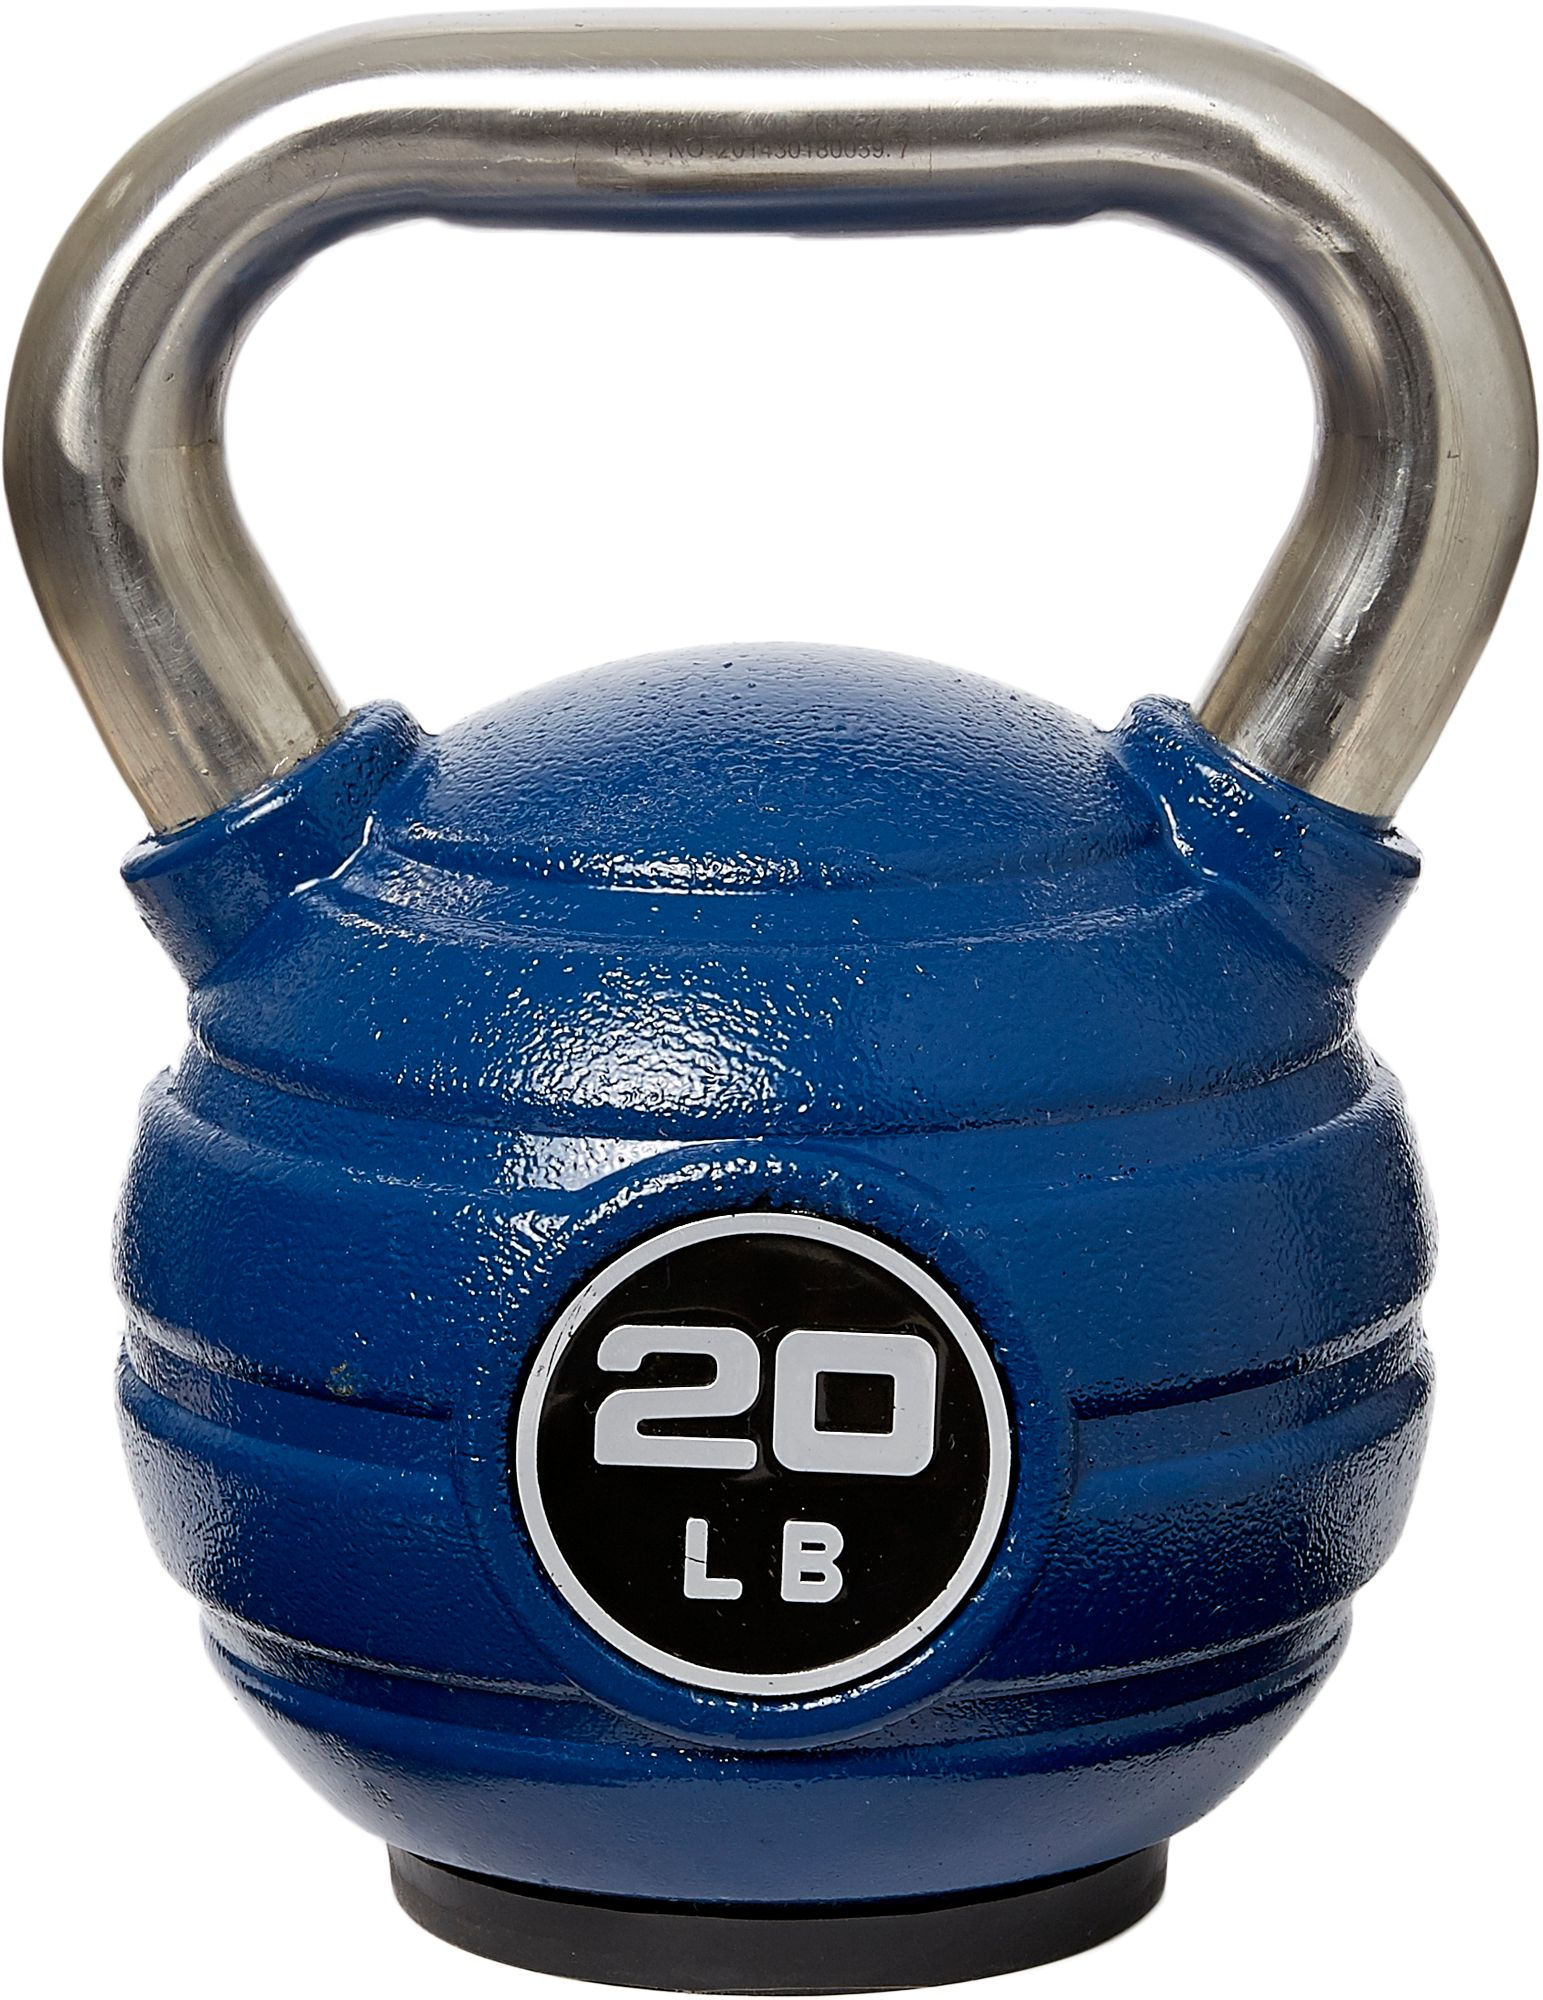 Fitness Gear Pro 20 Lb. Kettlebell by Fitness Gear